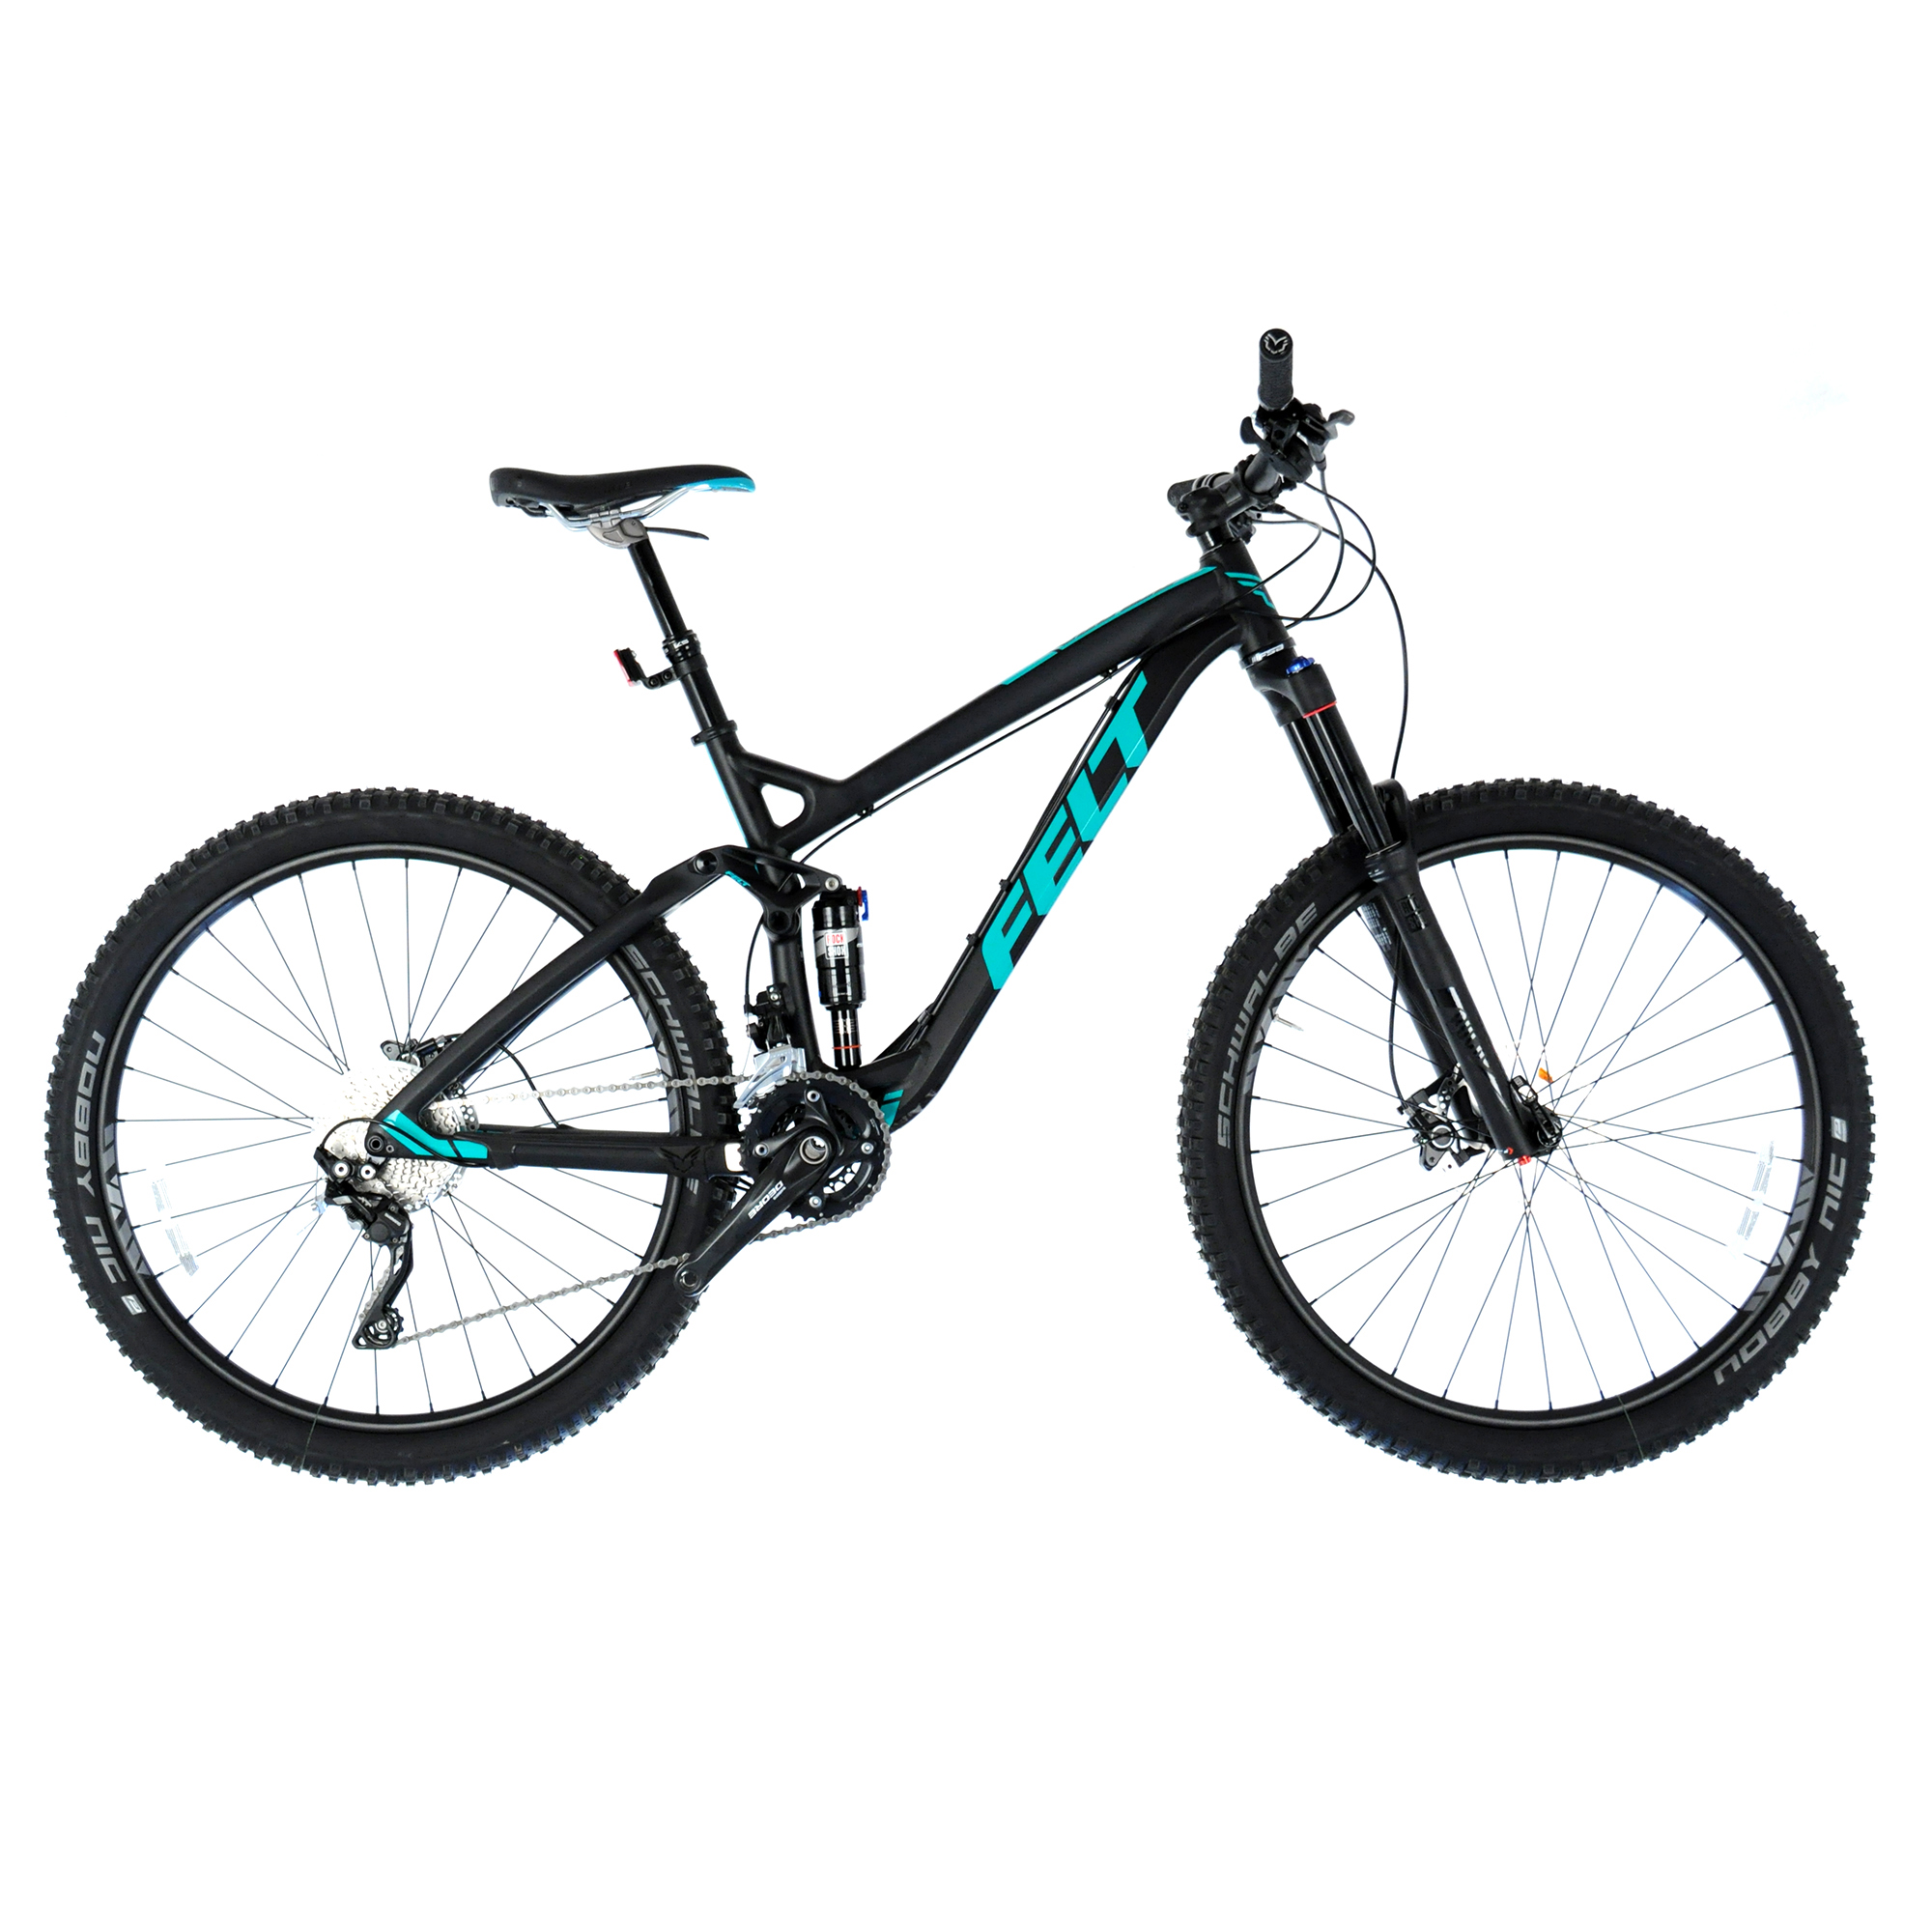 78d65269dc4 Felt Decree 30 Trail 27.5 Full Suspension MTB Mountain Bike   20